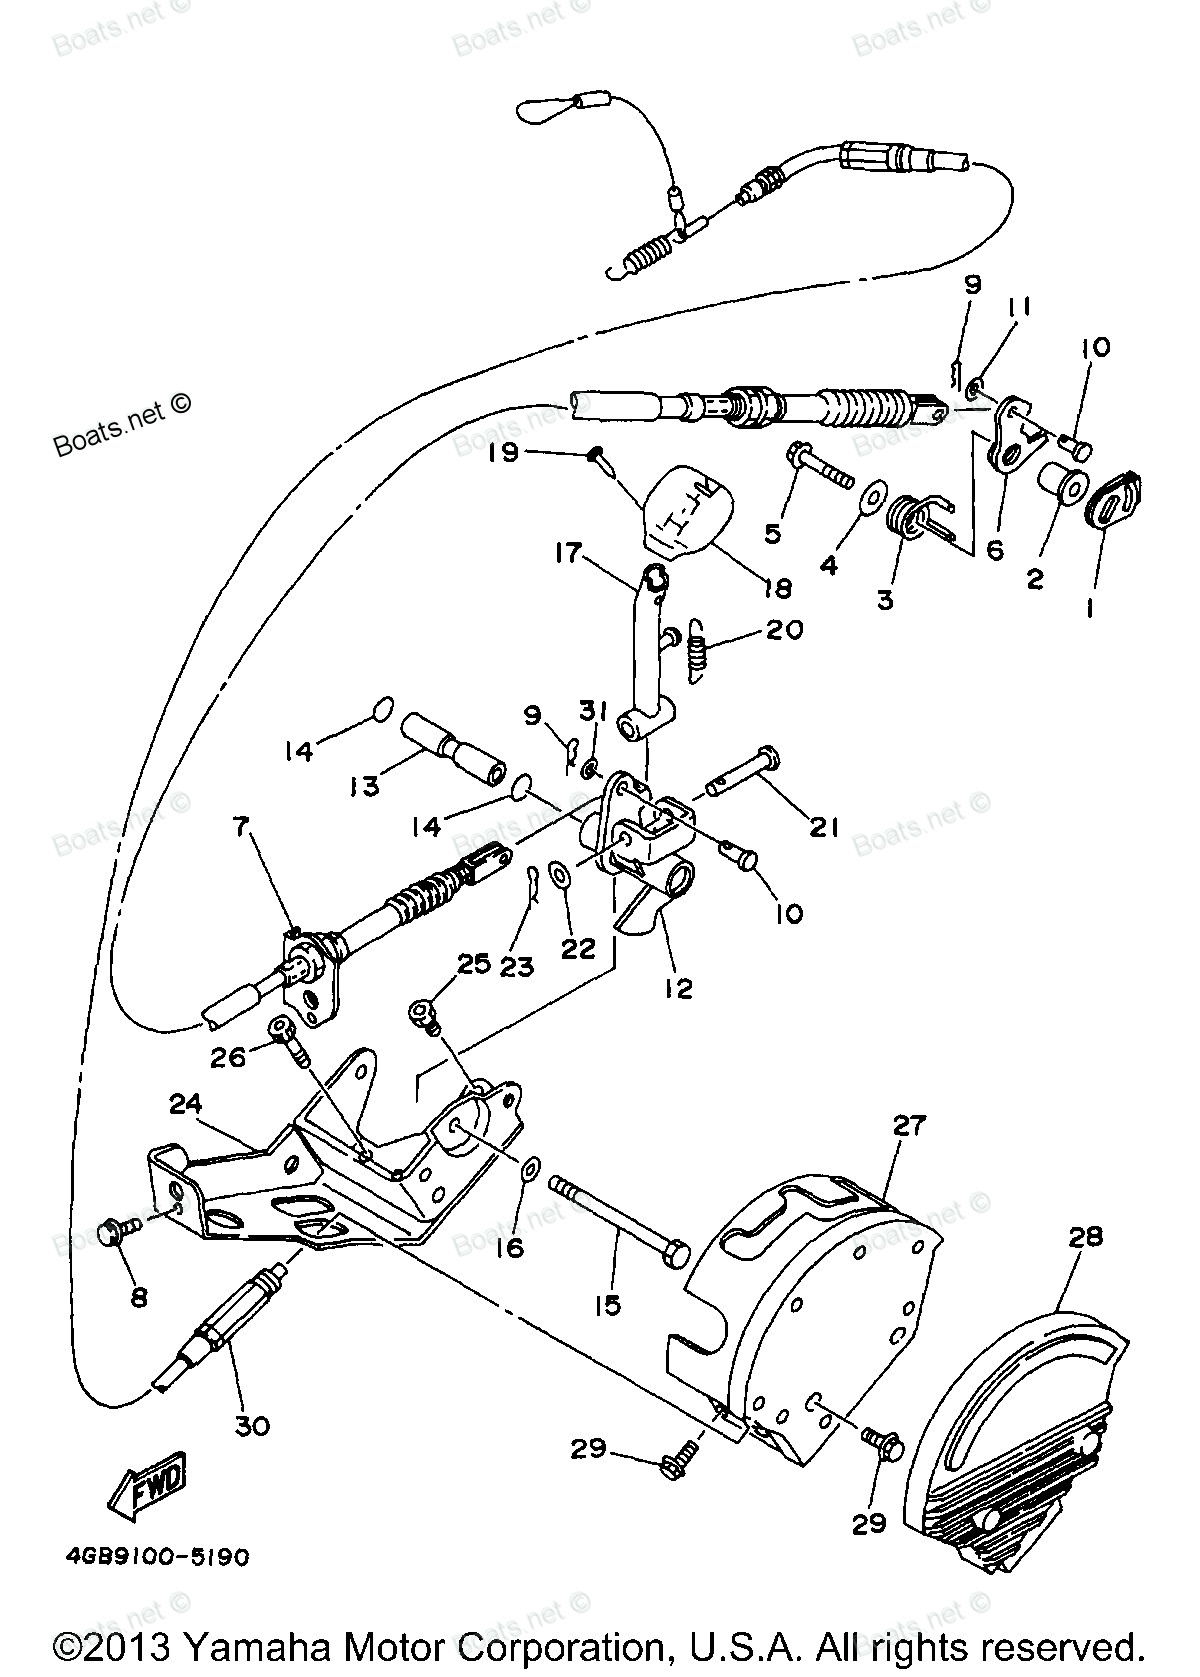 hight resolution of 1200x1677 les paul recording wiring diagram copy gibson sg 57 classic wiring